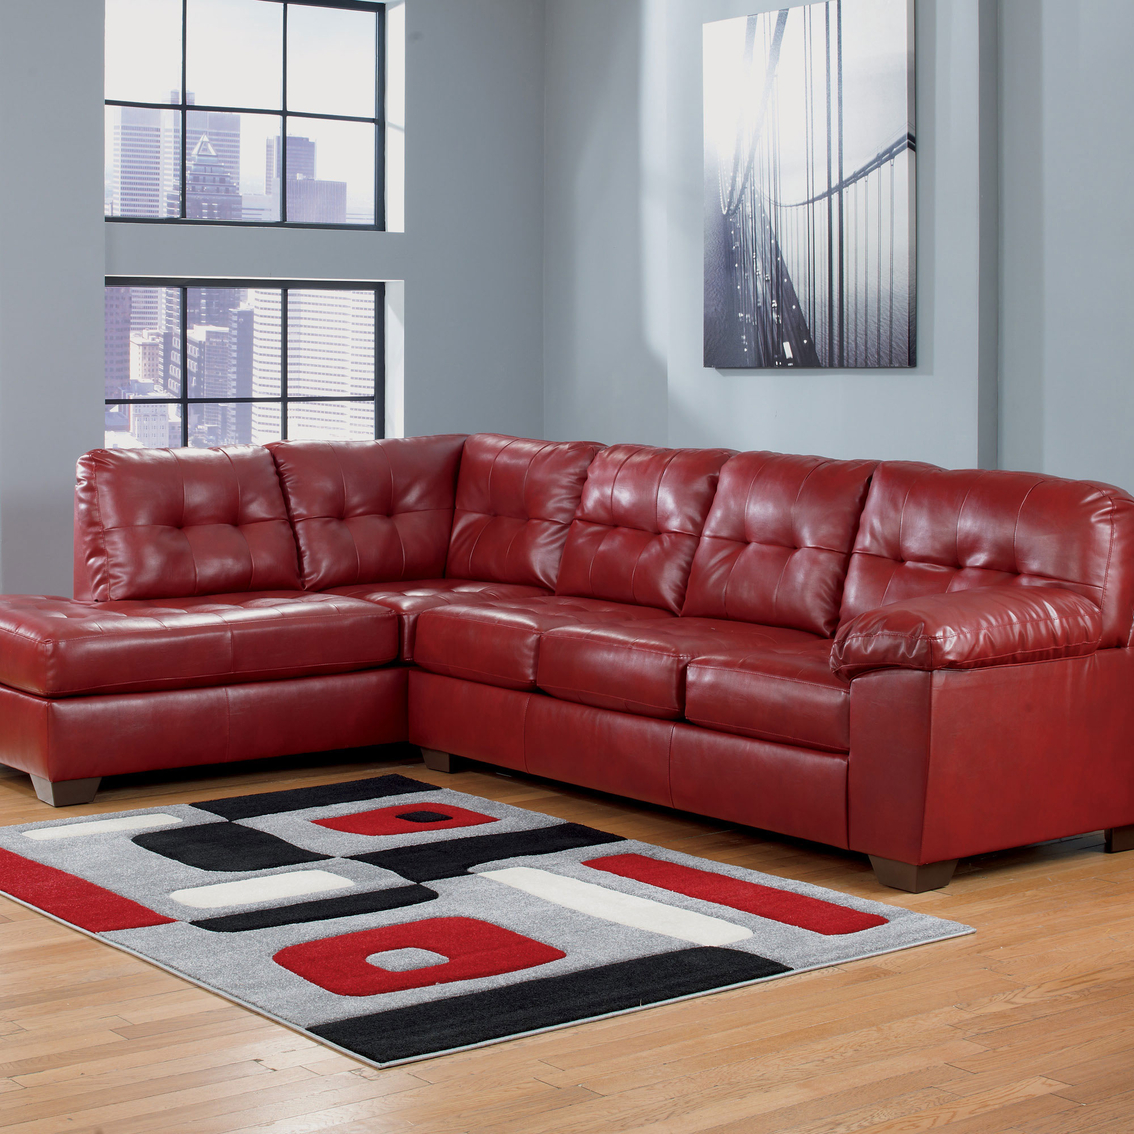 2 pc laf sectional sofa corner small living room signature design by ashley alliston durablend